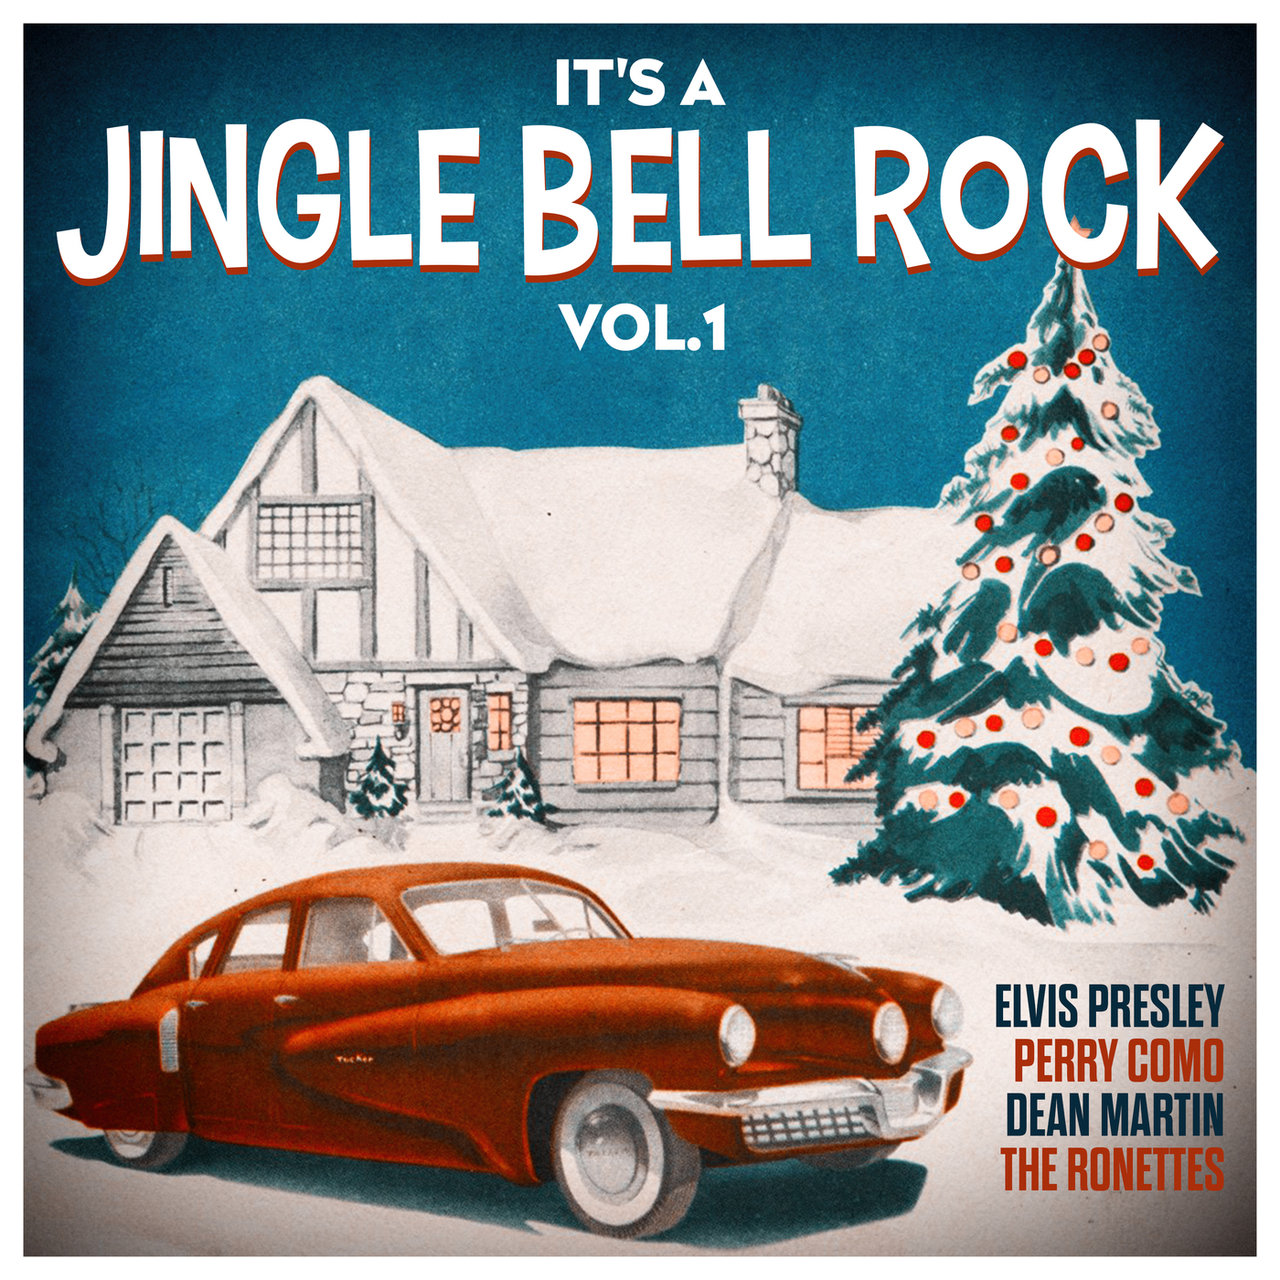 It's A Jingle Bell Rock Vol.1